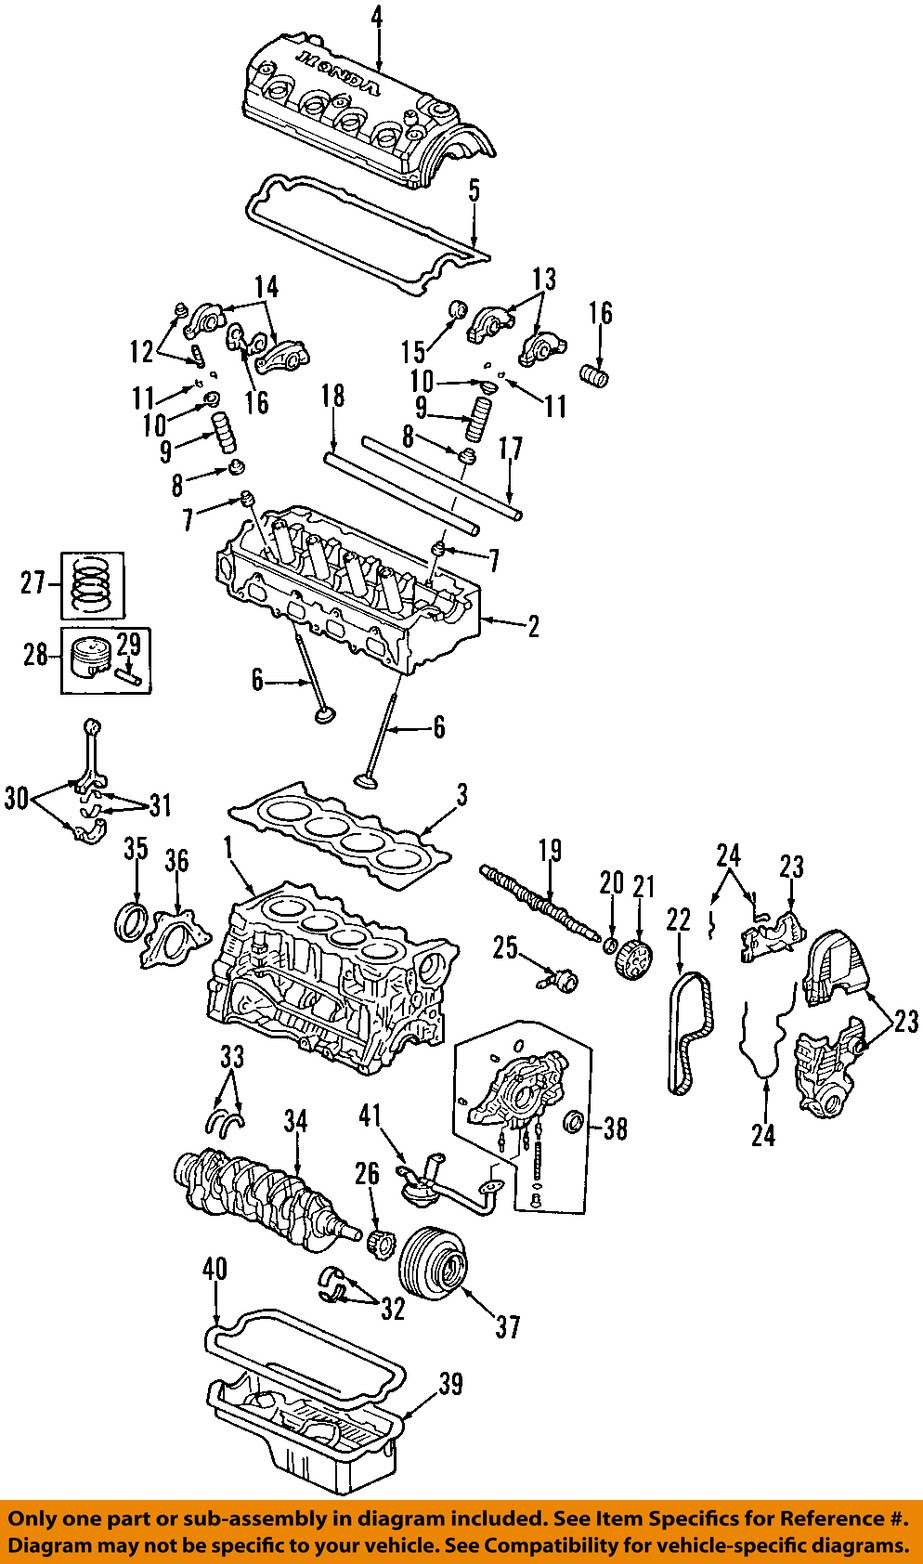 96 Honda Civic Engine Diagram - Honda Civic